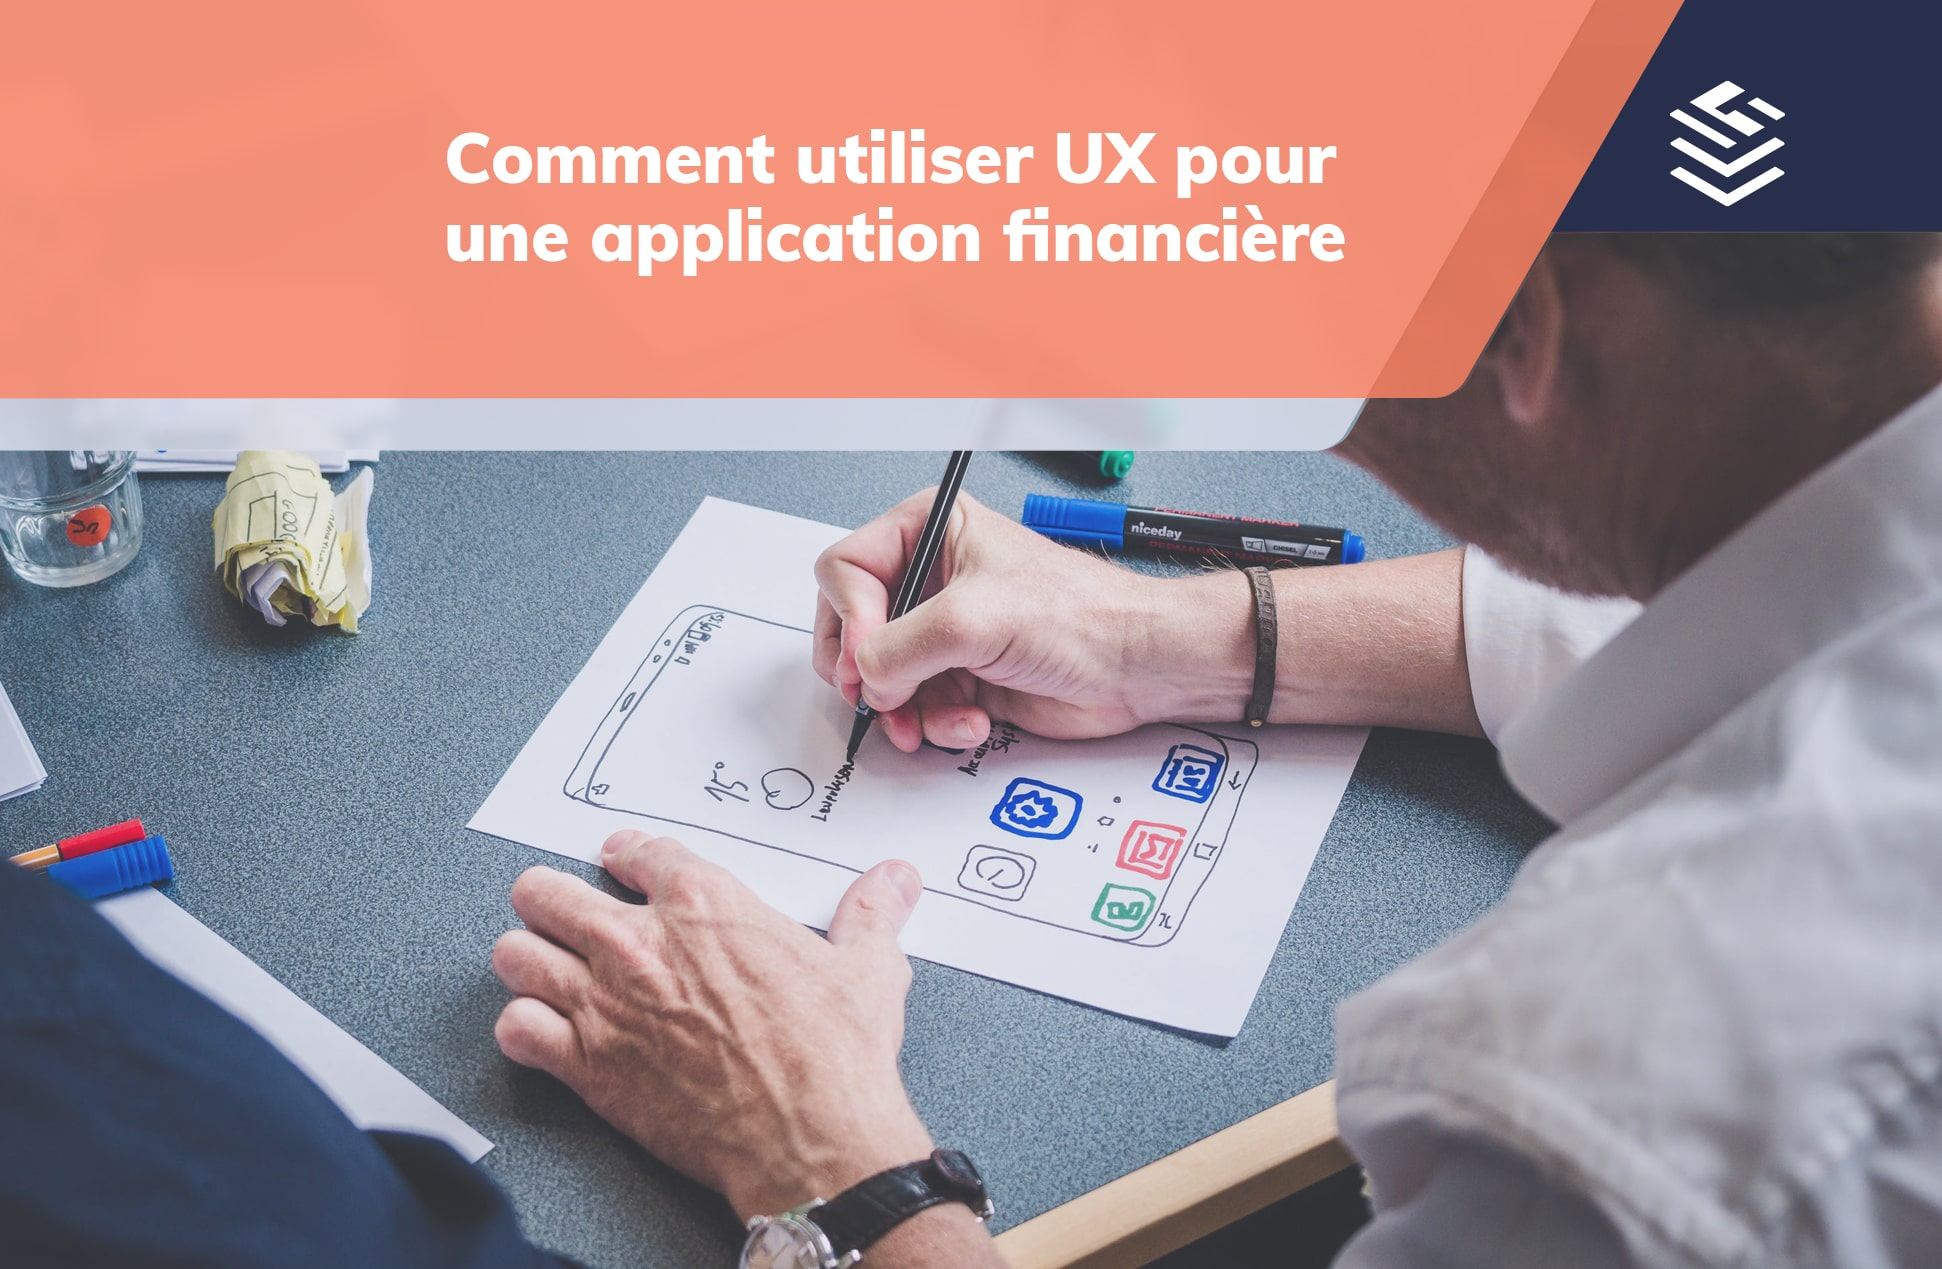 IT Outsourcing Informatique UX App Financiere FR min